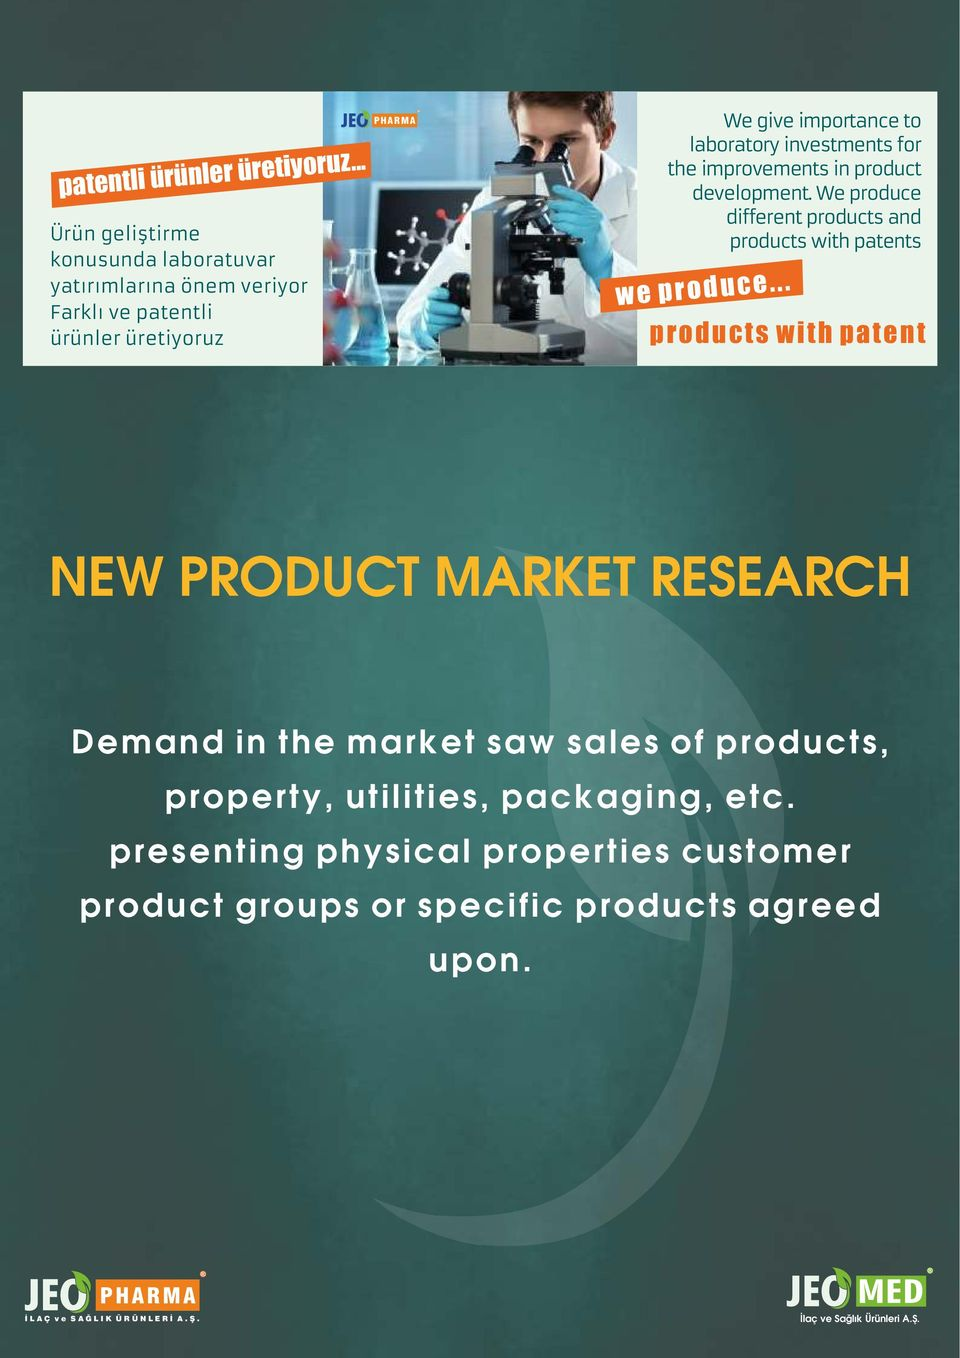 laboratory investments for the improvements in product development.